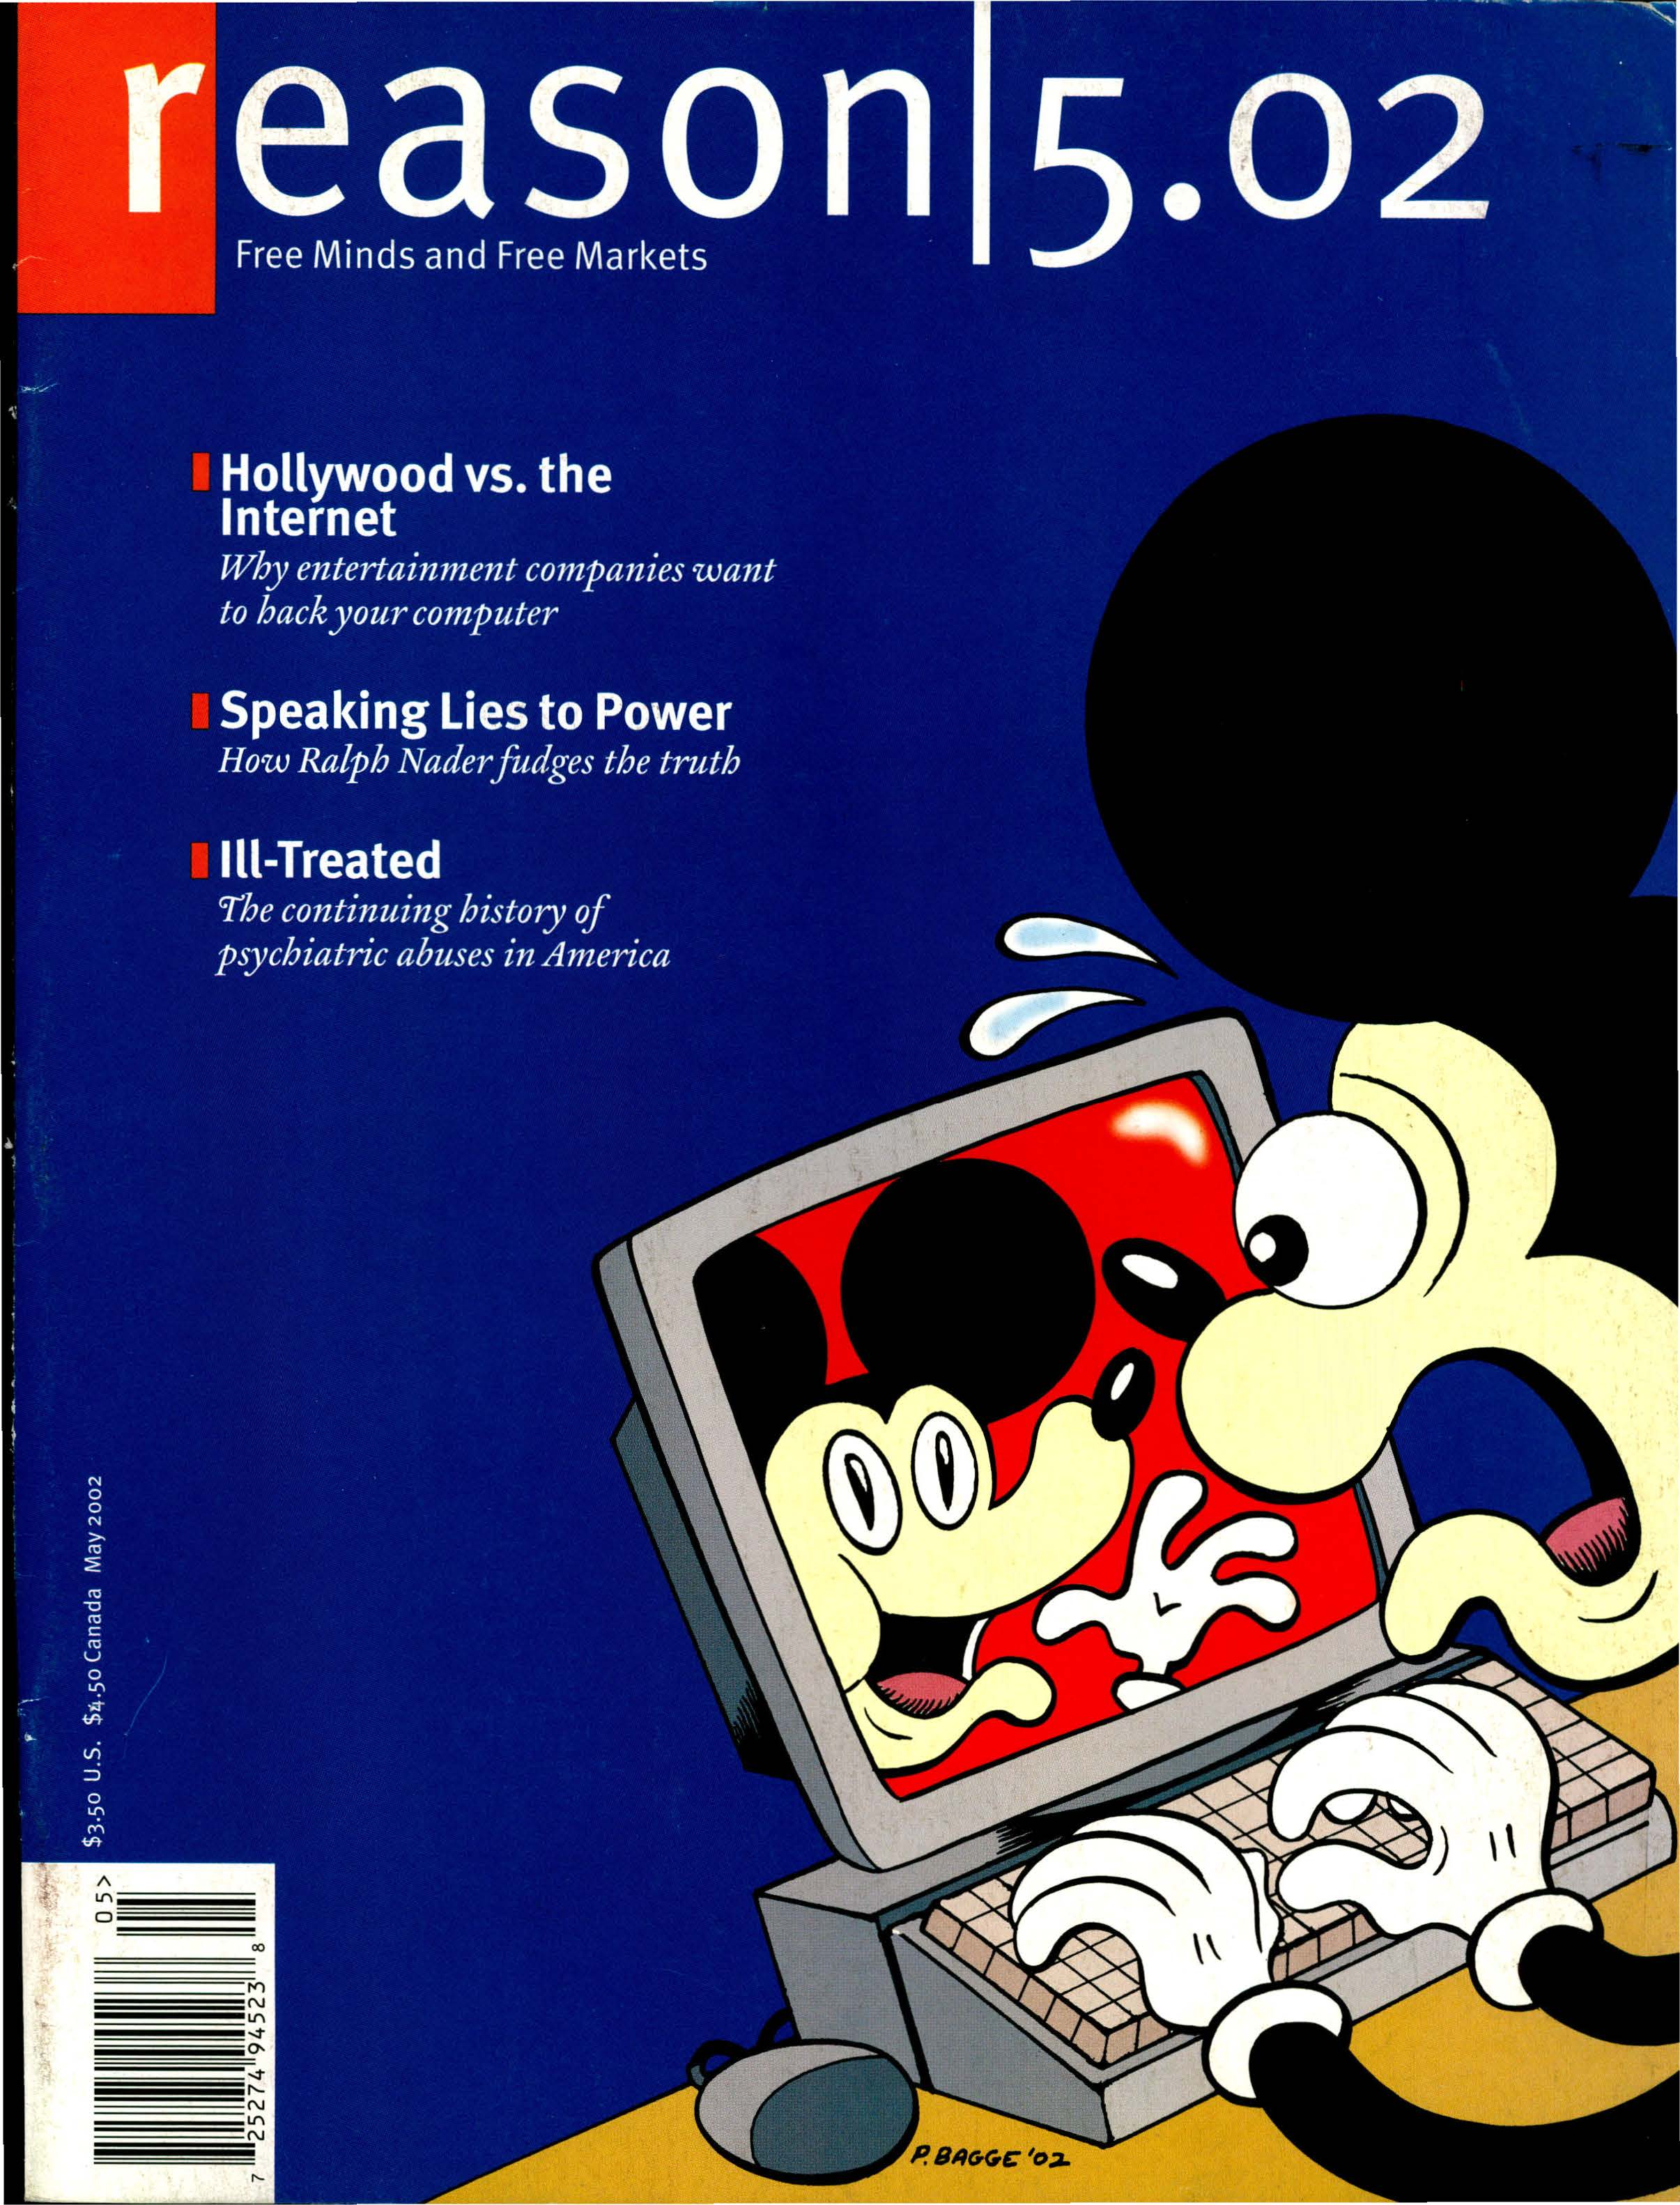 Reason Magazine, May 2002 cover image